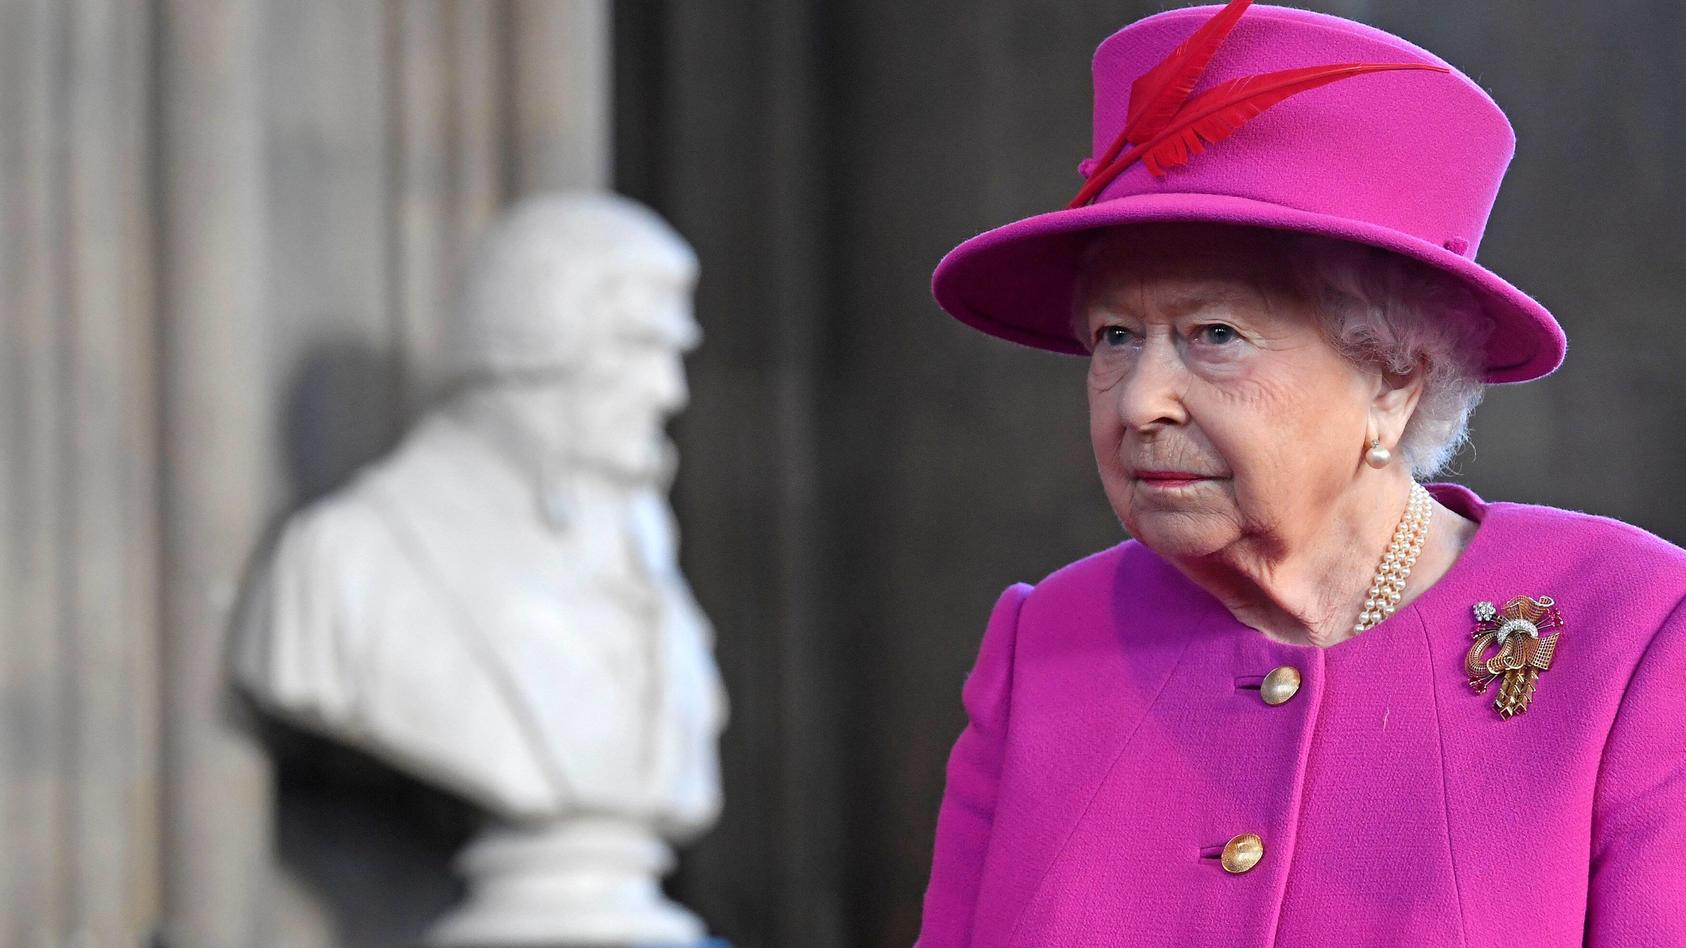 Queen Elisabeth II. dankt den mutigen Helden der Messer-Attacke bei der London Bridge.